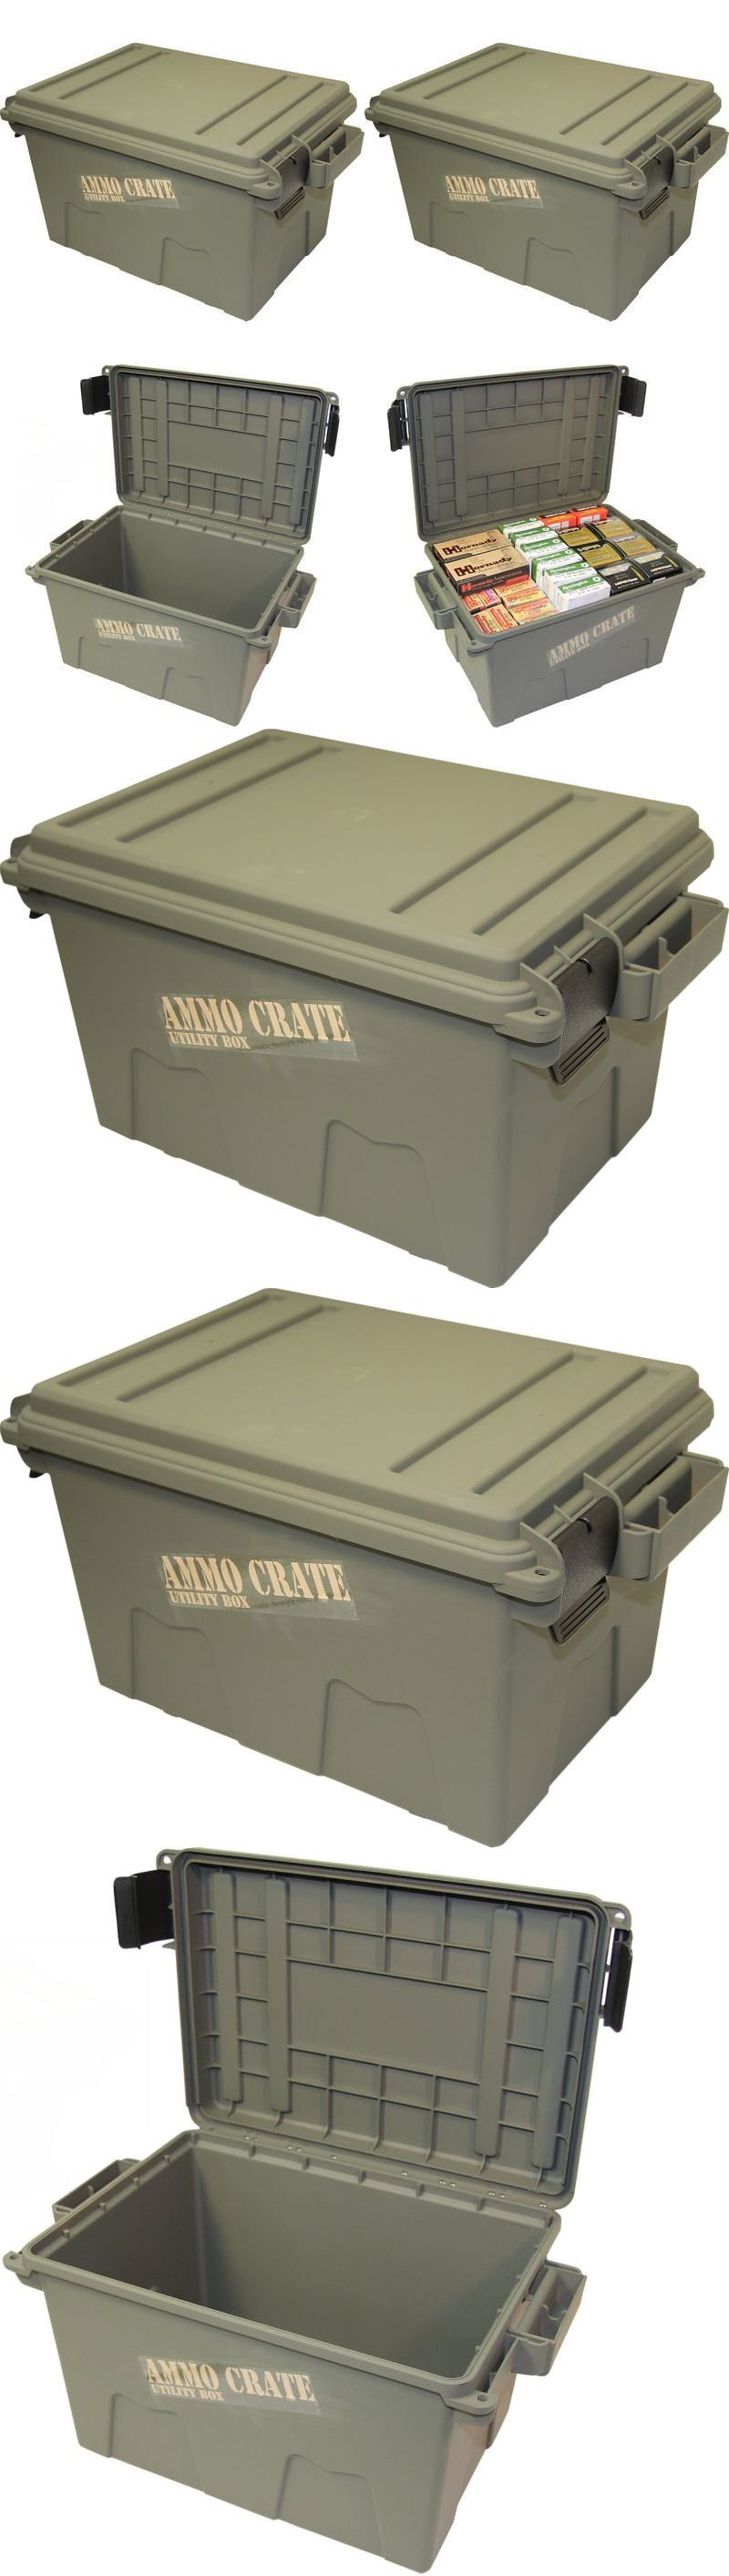 Ammunition Cases and Cans 177886 Ammo Crate Utility Box Shotgun